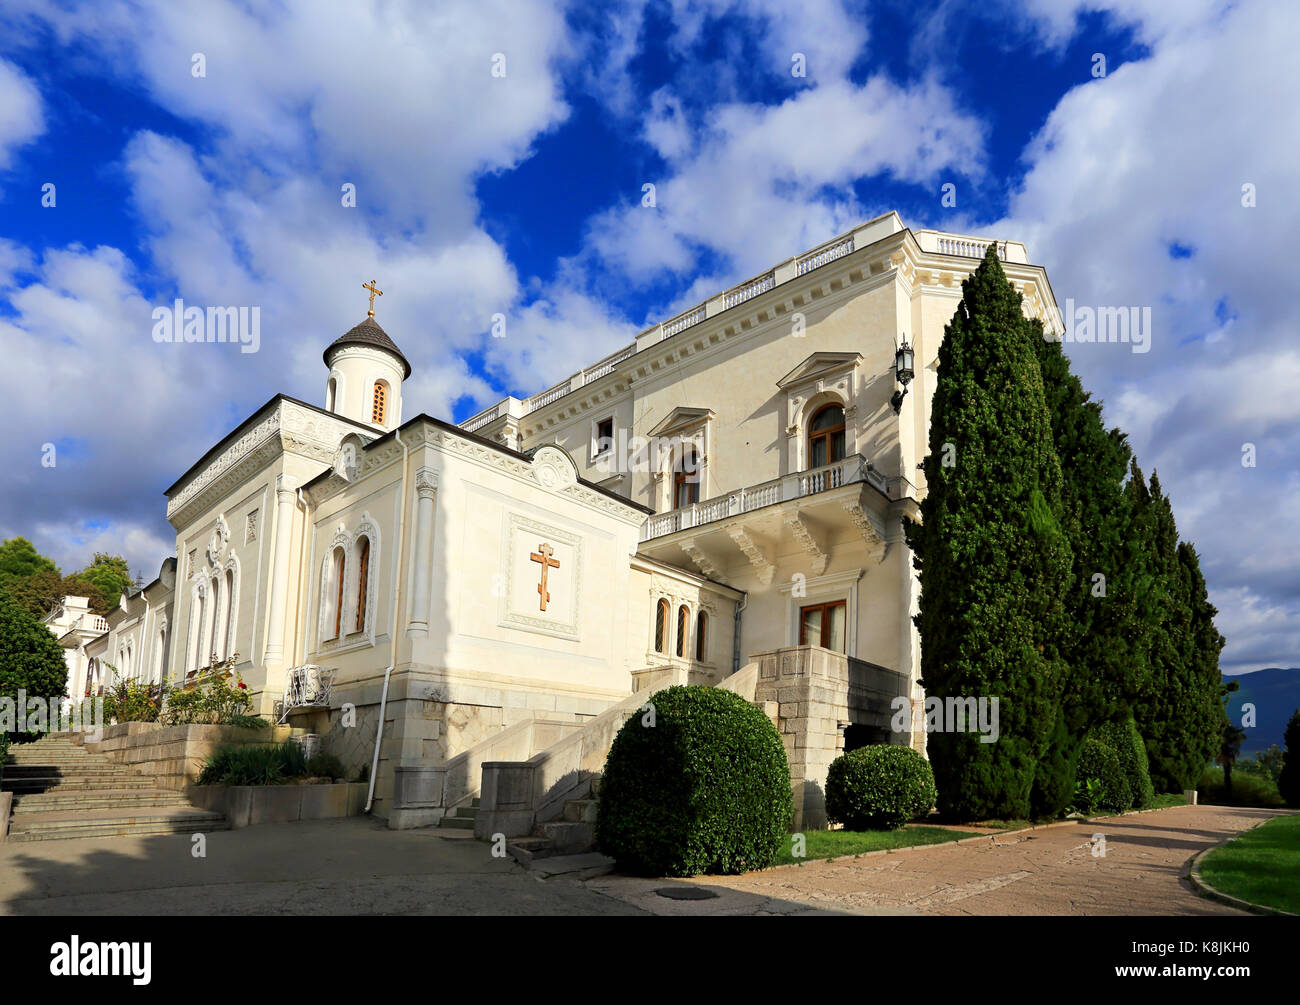 Ñhurch of the nineteenth century built in the Byzantine style and white palace nearby - Stock Image